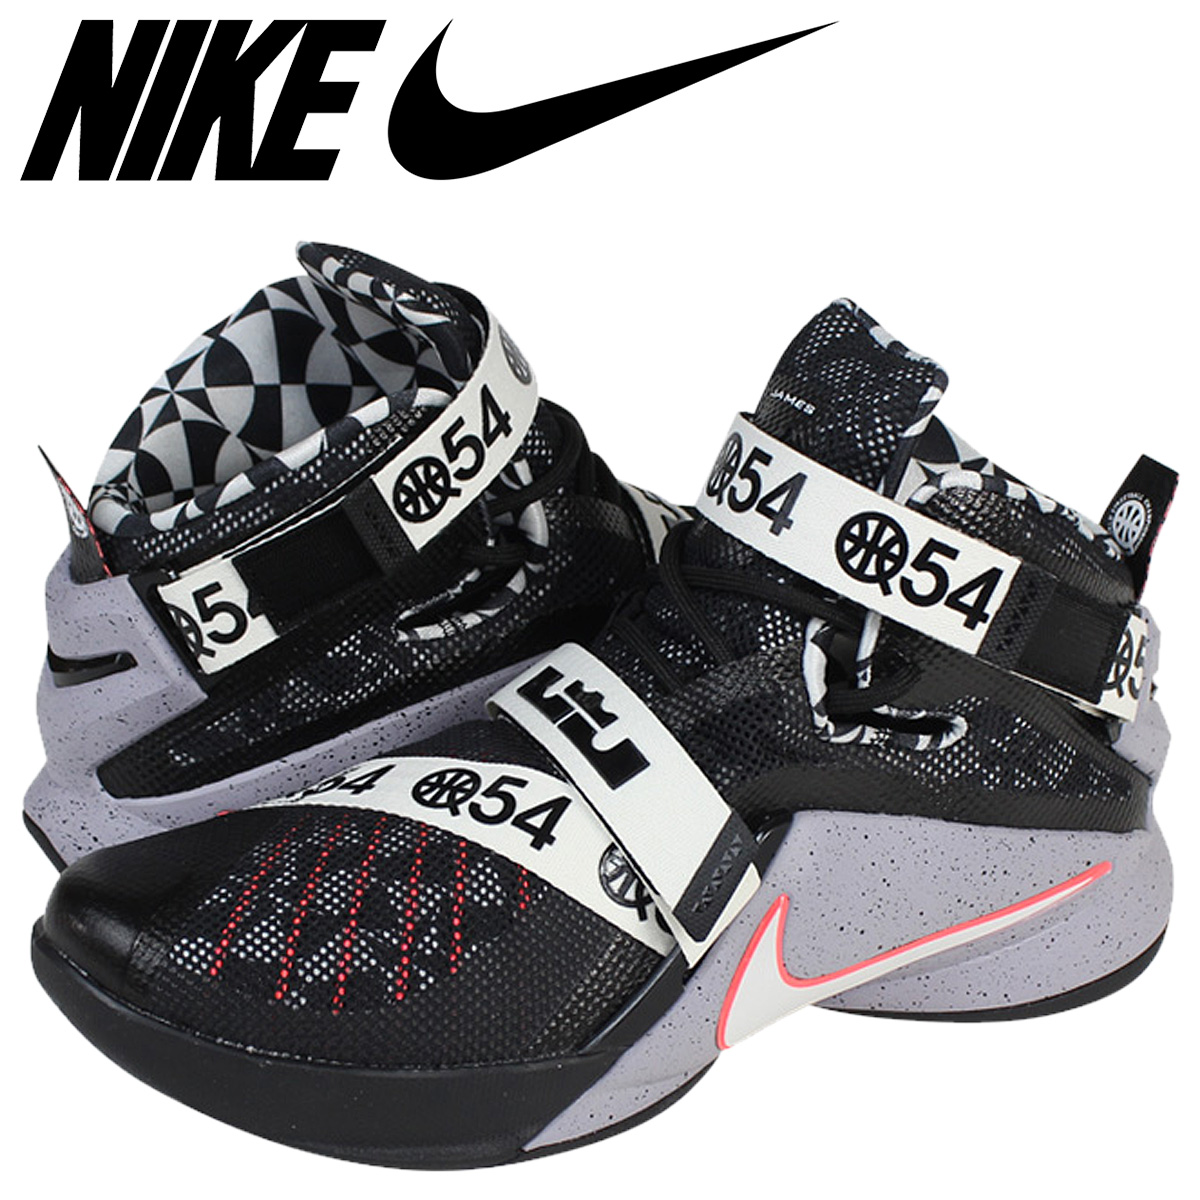 e56799d906a ALLSPORTS  Nike NIKE LeBron soldier sneakers LEBRON SOLDIER IX LMTD ...